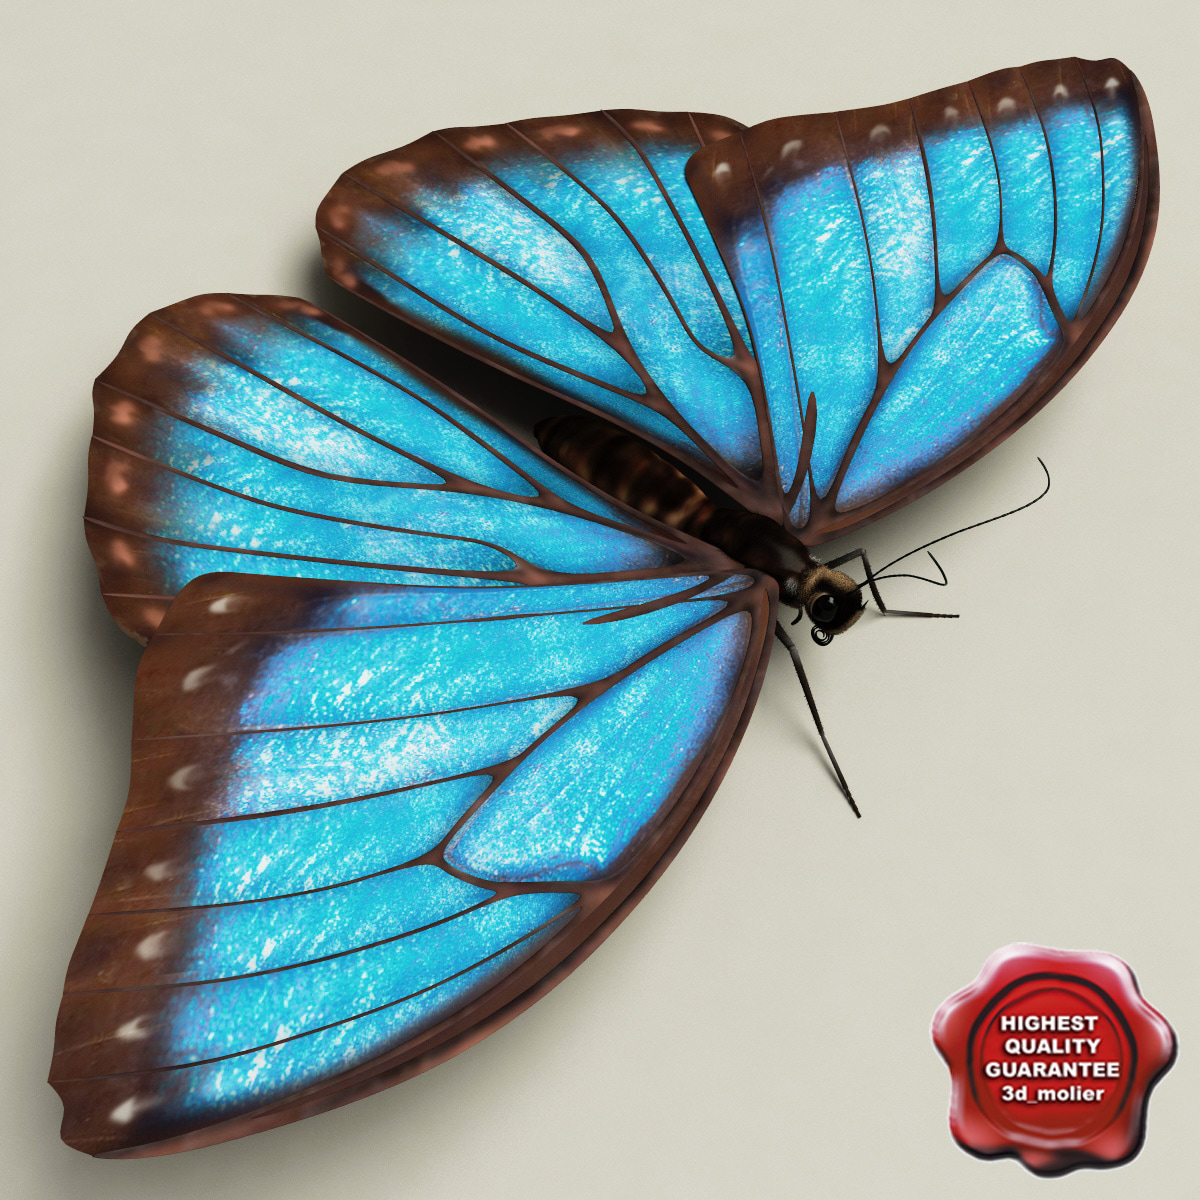 Blue_Morpho_Butterfly_Pose5_00.jpg